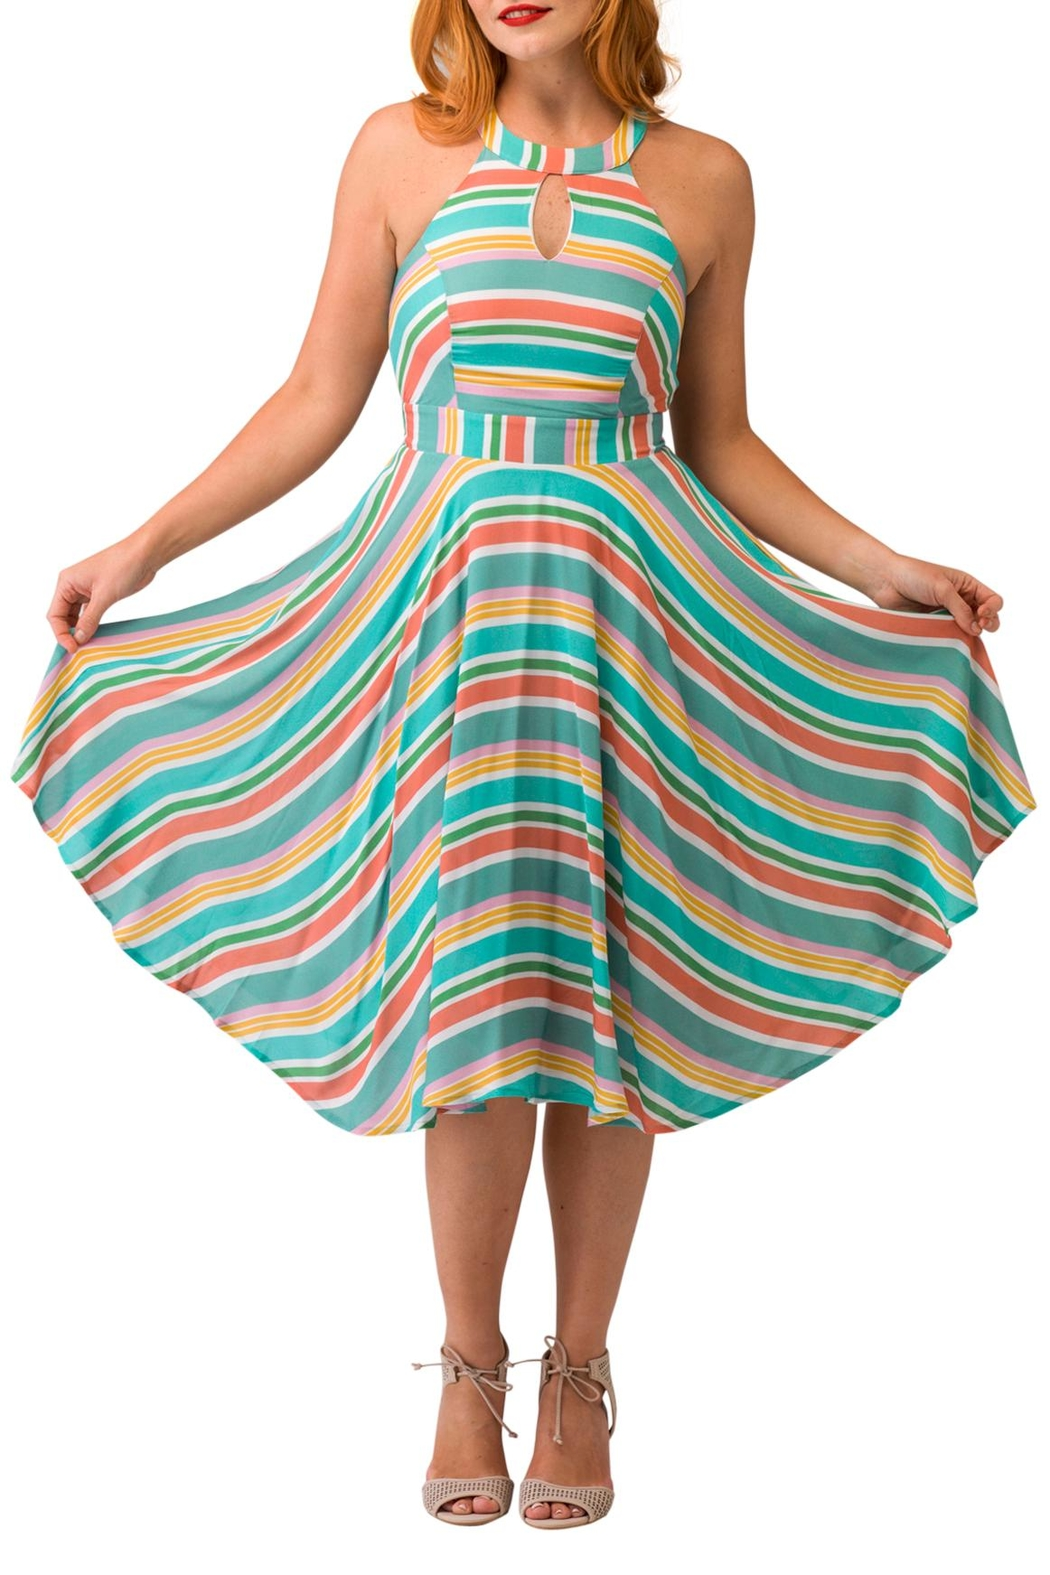 4b924ce5dc Smak Parlour Summer Stripes Dress from Omaha by Daisy Jones  Locker ...